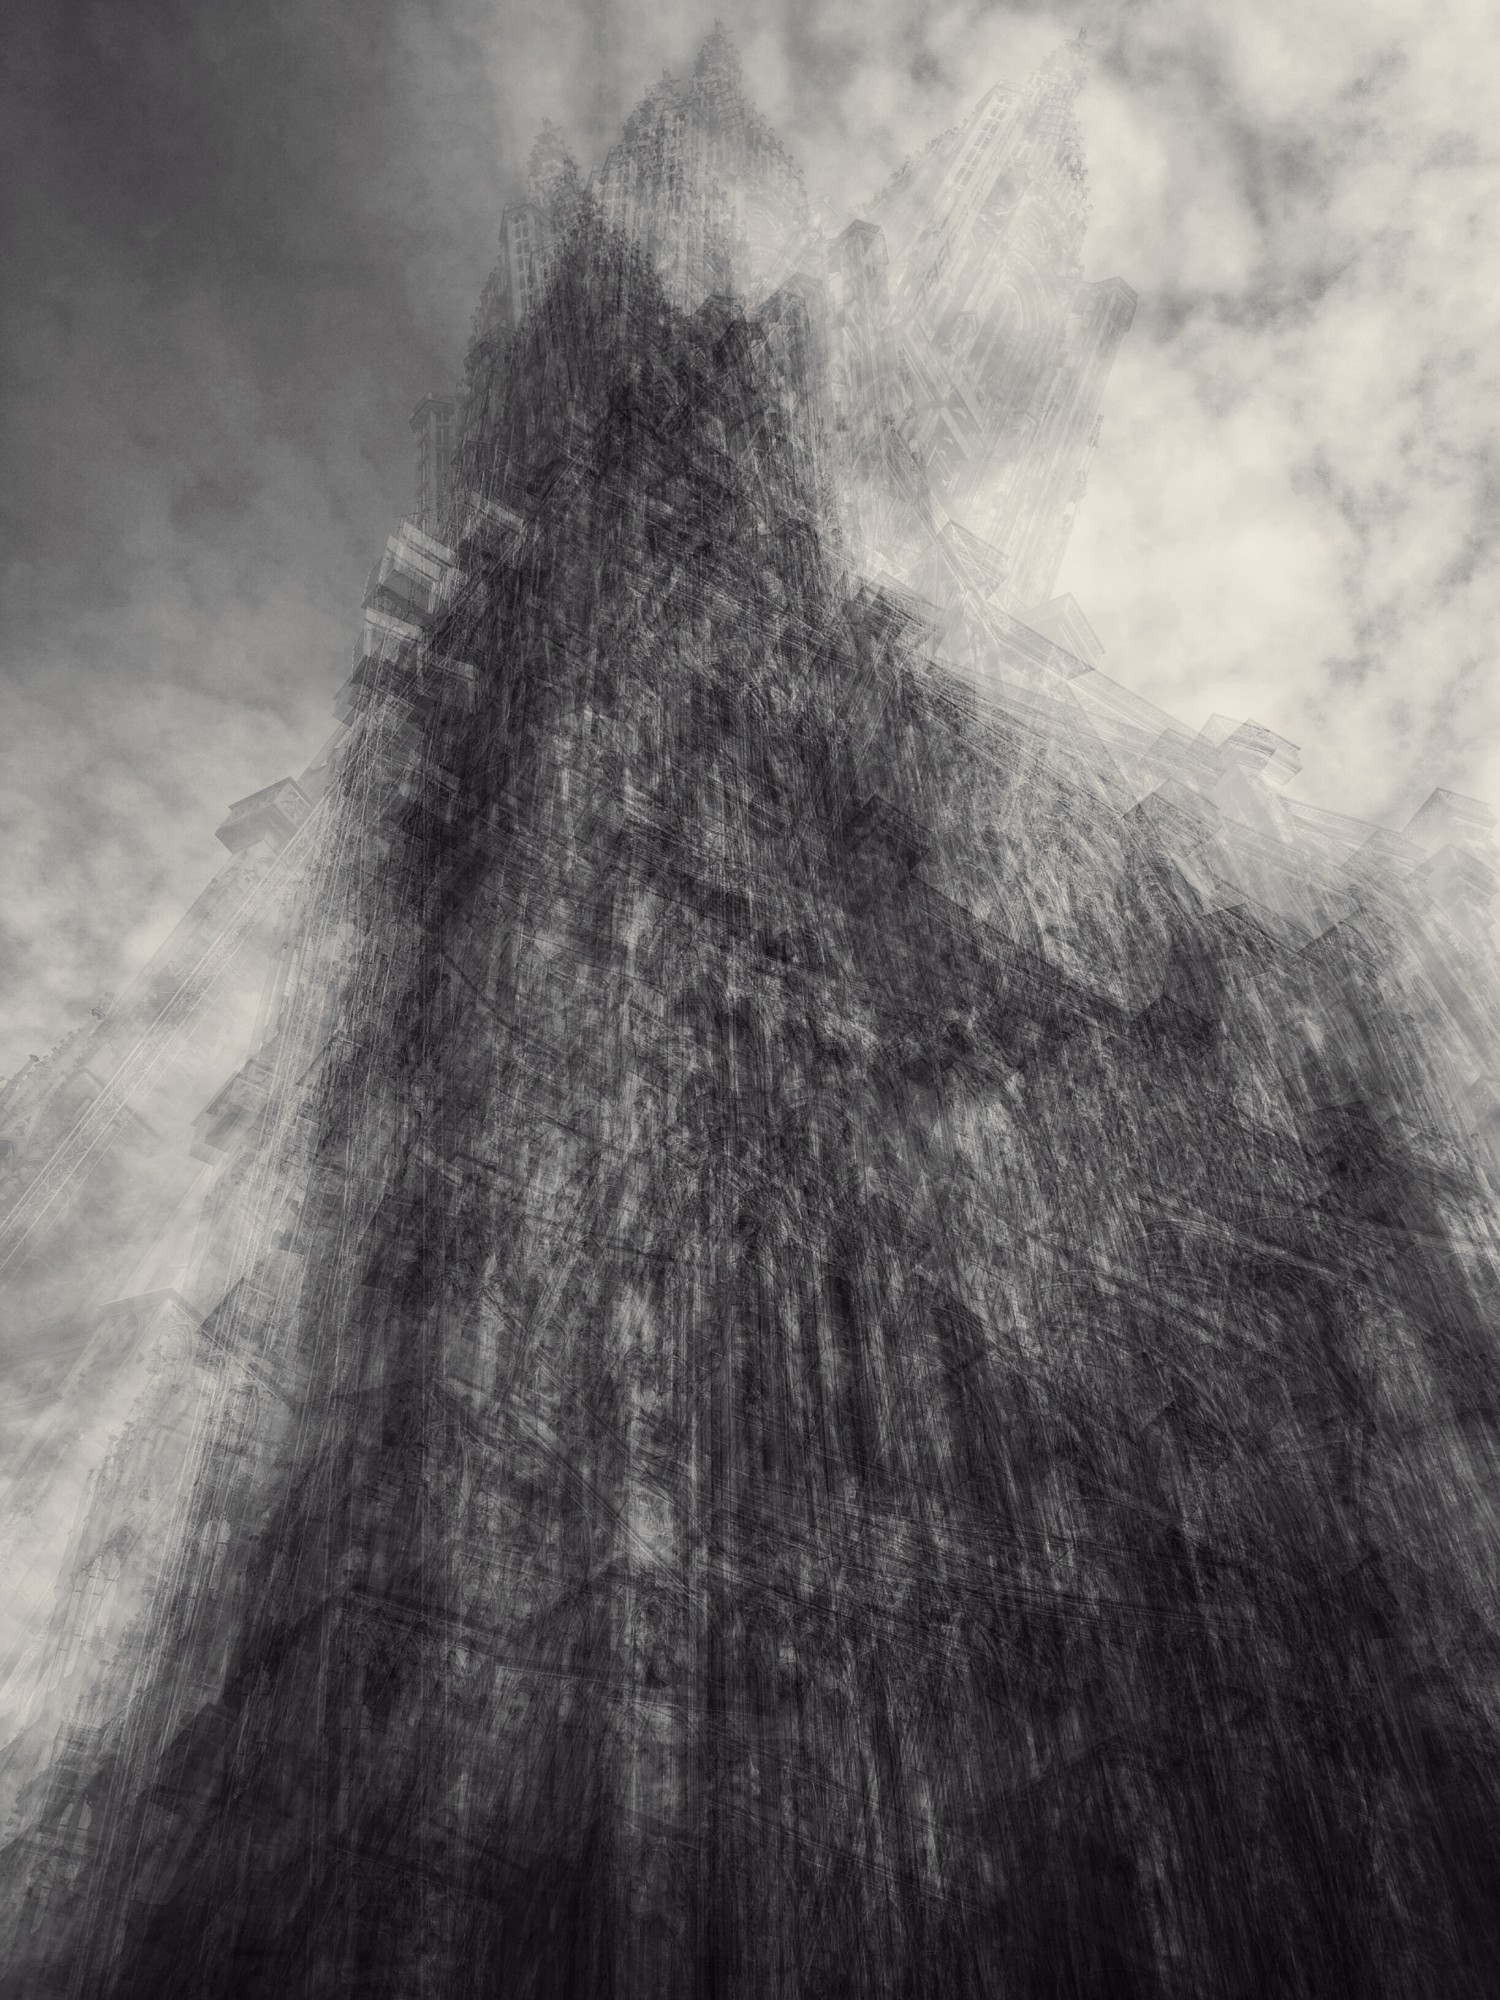 """The image comes form the ongoing iPhone series of """"Modern Cathedrals"""", it was shot in September in Strasbourg and represents Cathedrale Notre Dame de Strasbourg."""